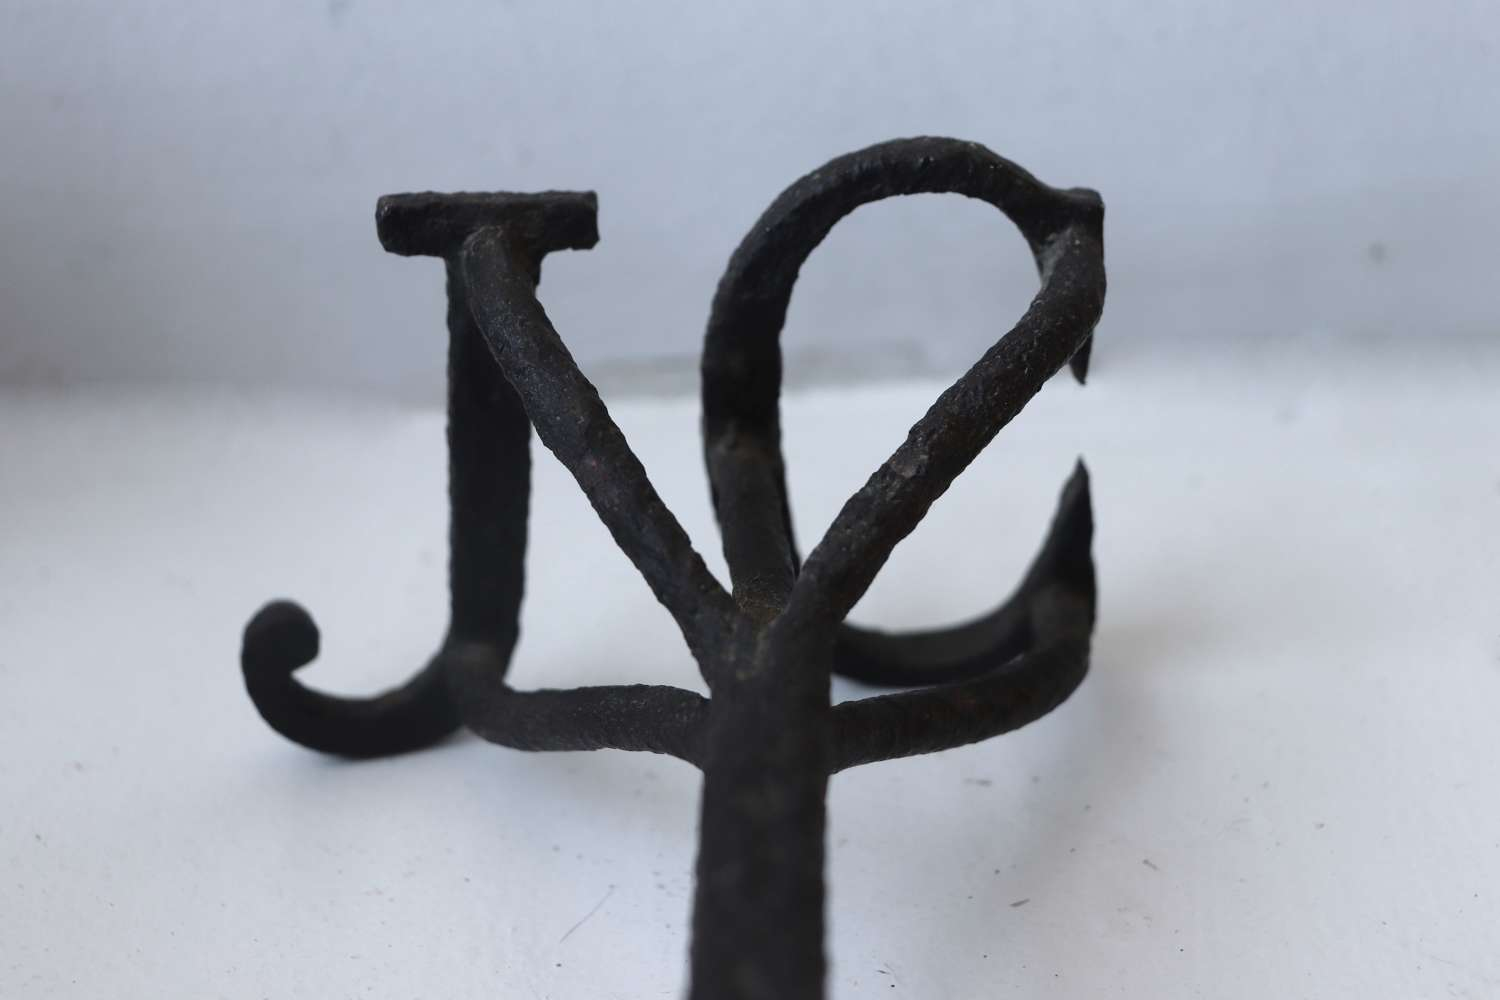 Old livestock branding iron with